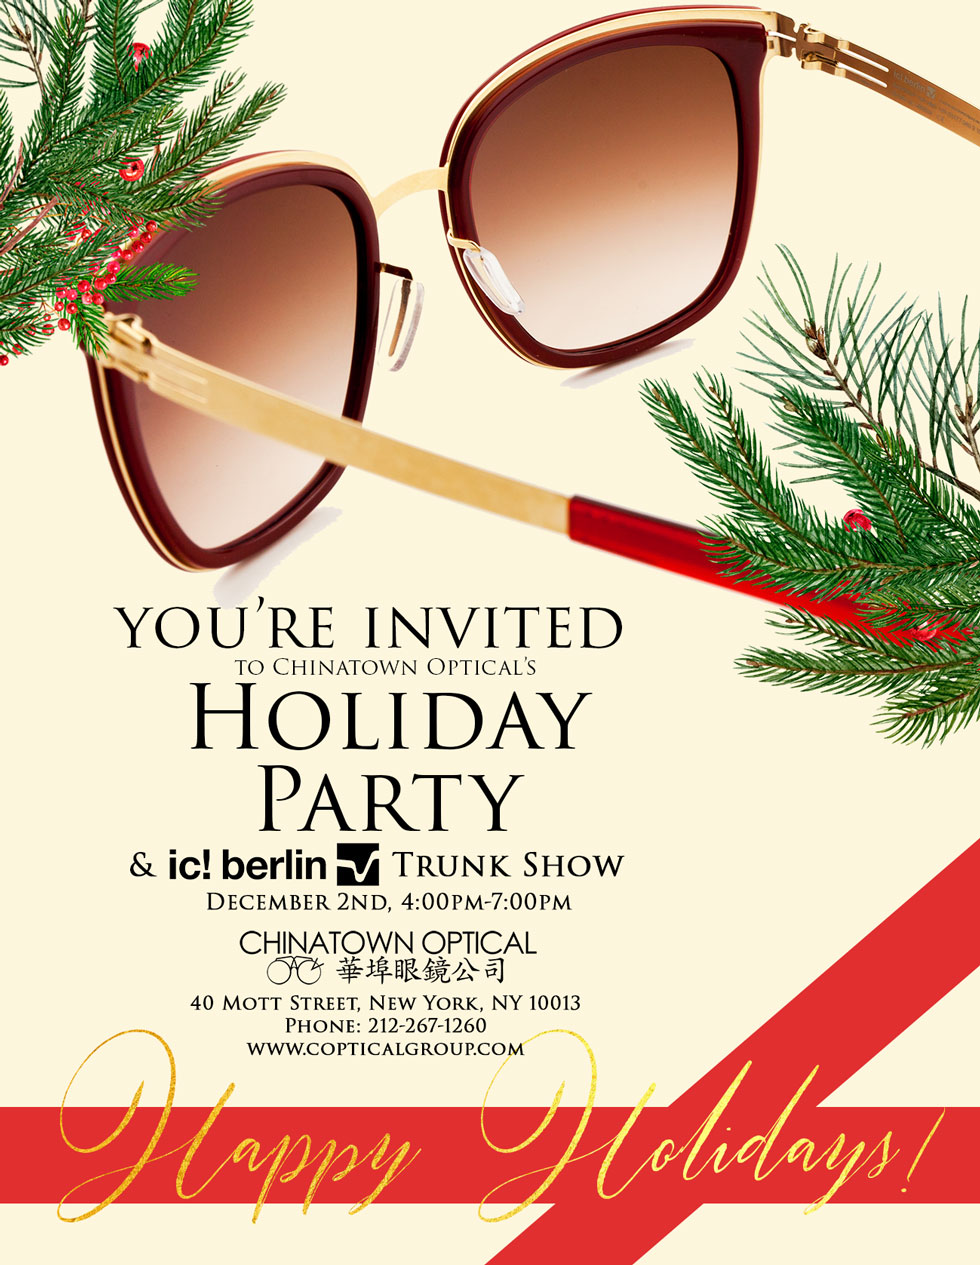 Chinatown Optical Holiday Party X ic! berlin Trunk Show